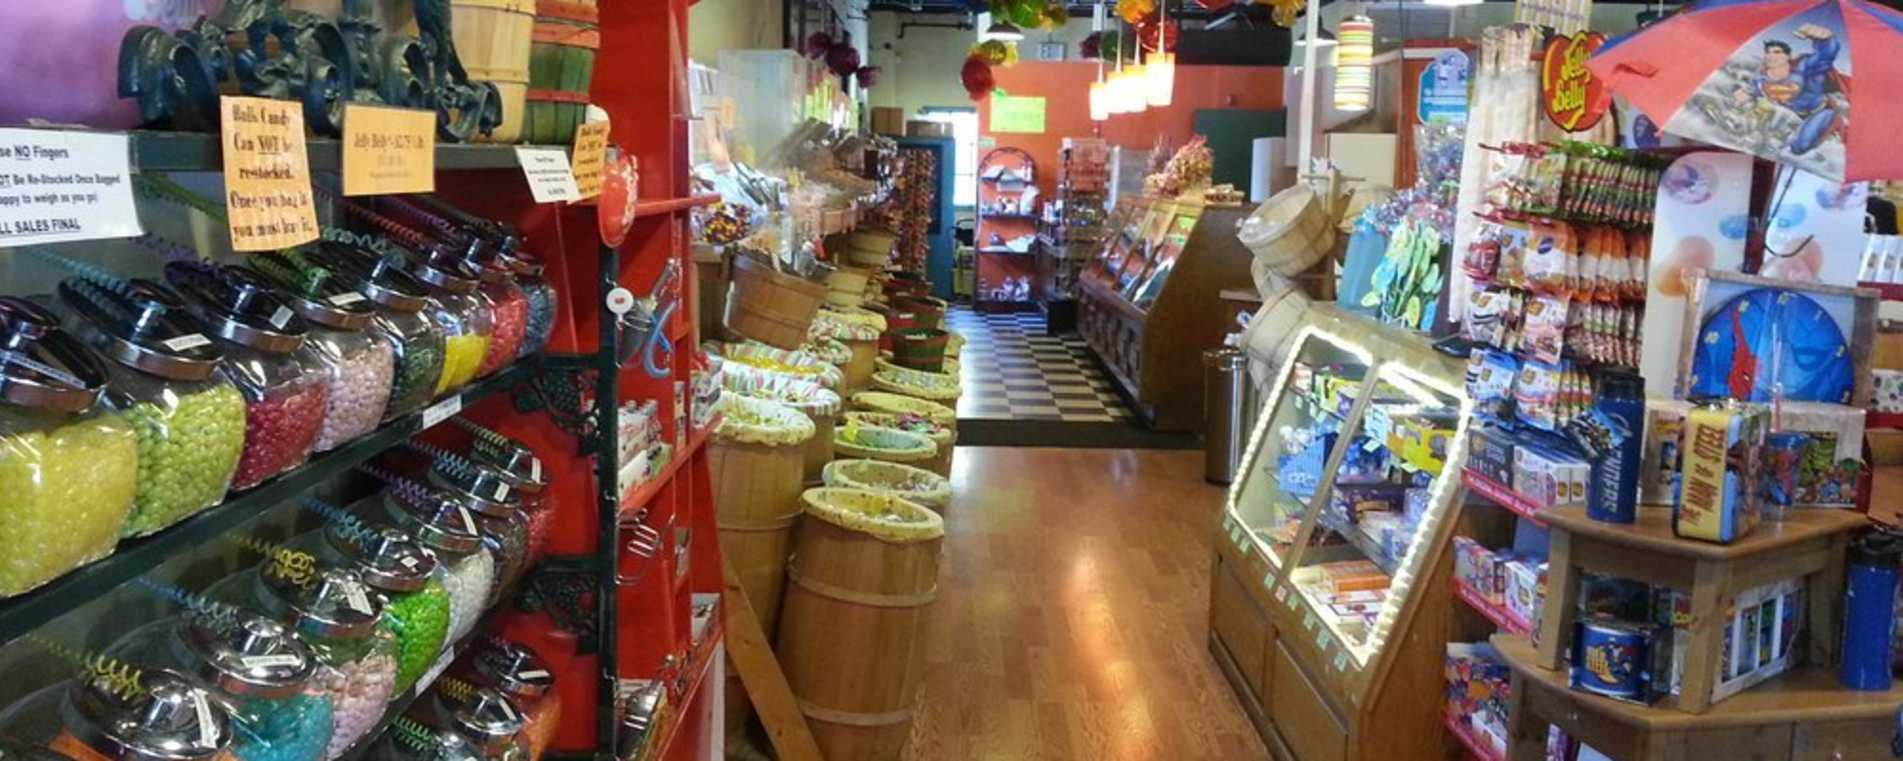 Old Town Sweet Shop - Temecula